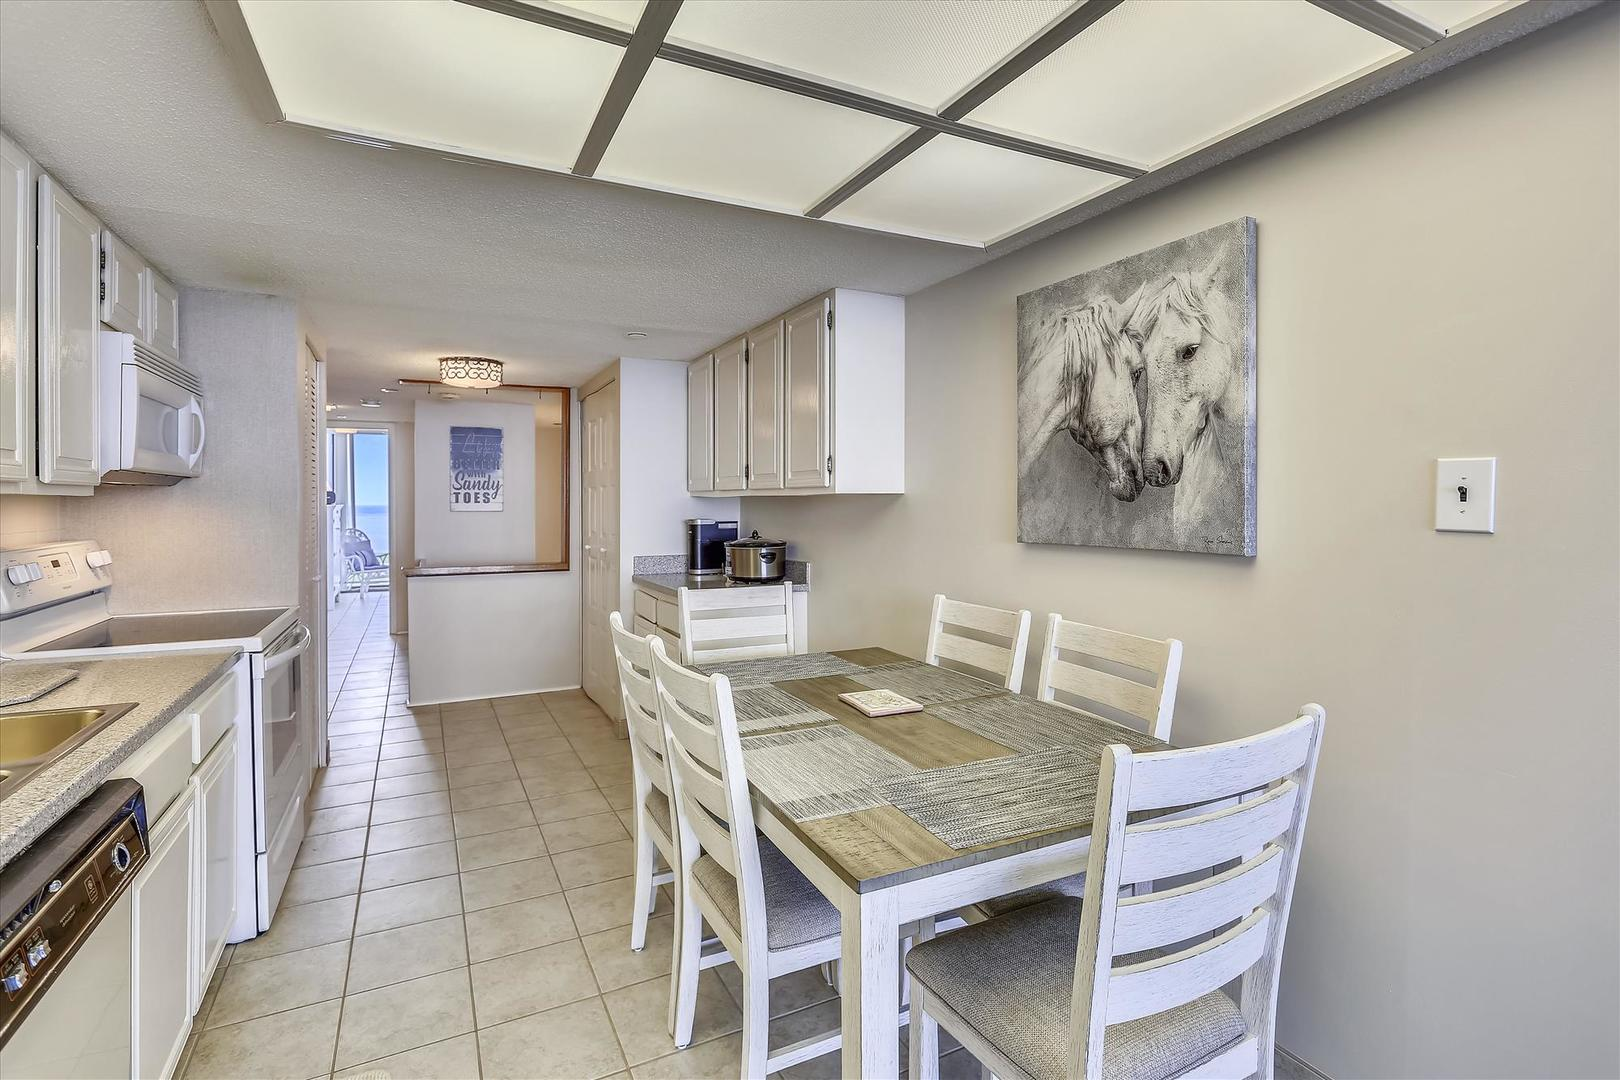 Century I 2221 - Kitchen and Dining Area